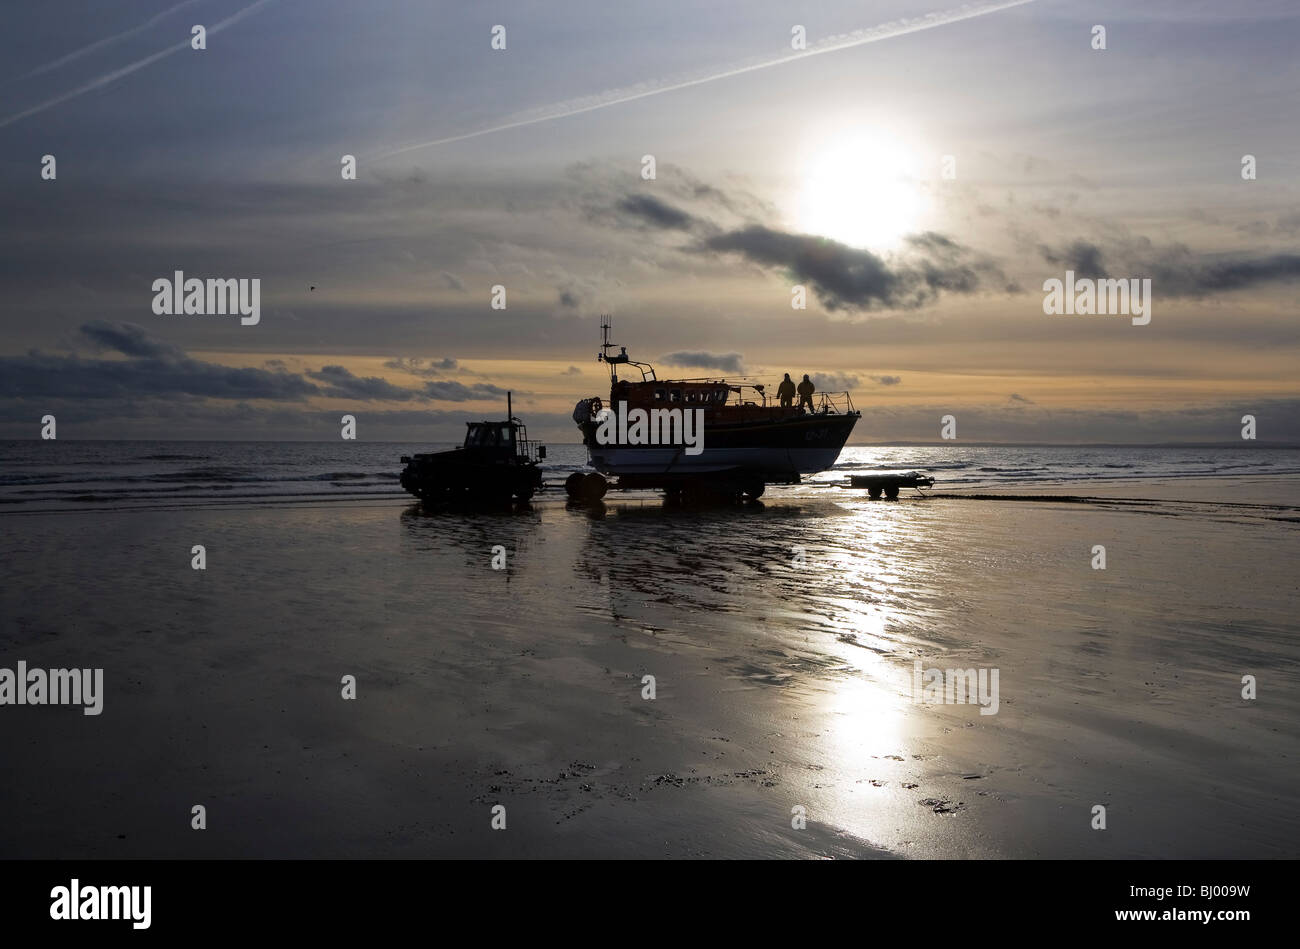 Early dawn Lifeboat Launch by Tractor, Clogher Head, County Louth, Ireland - Stock Image